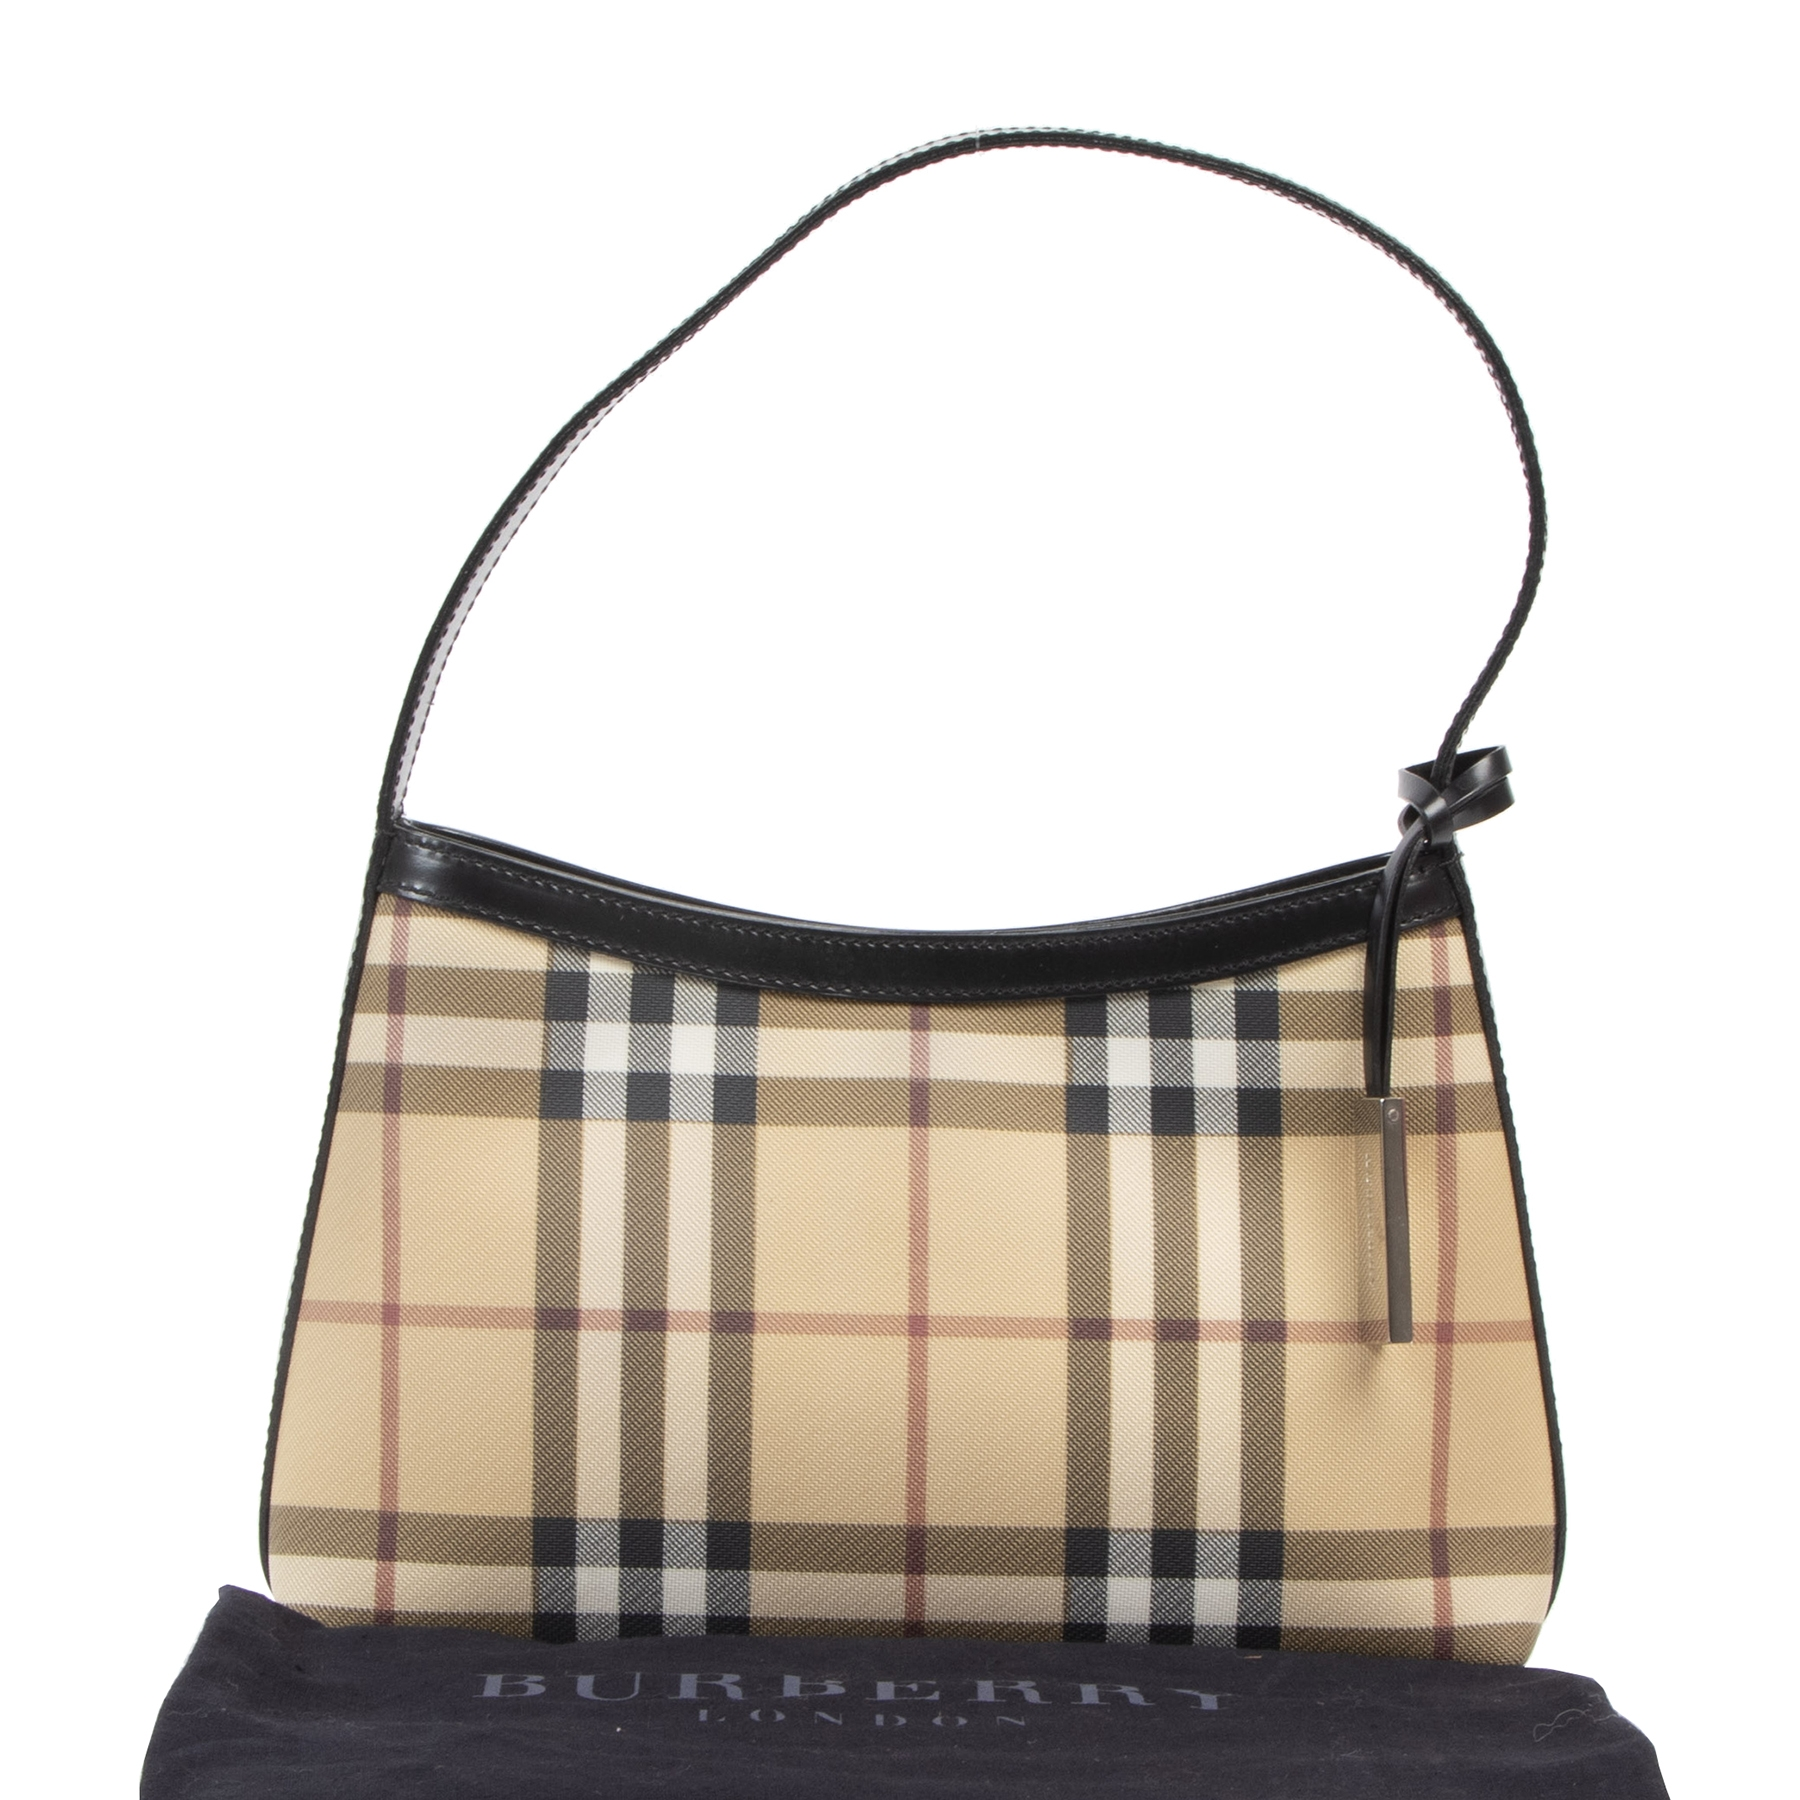 Authentieke tweedehands vintage Burberry Nova Check Small Shoulder Bag koop online webshop LabelLOV